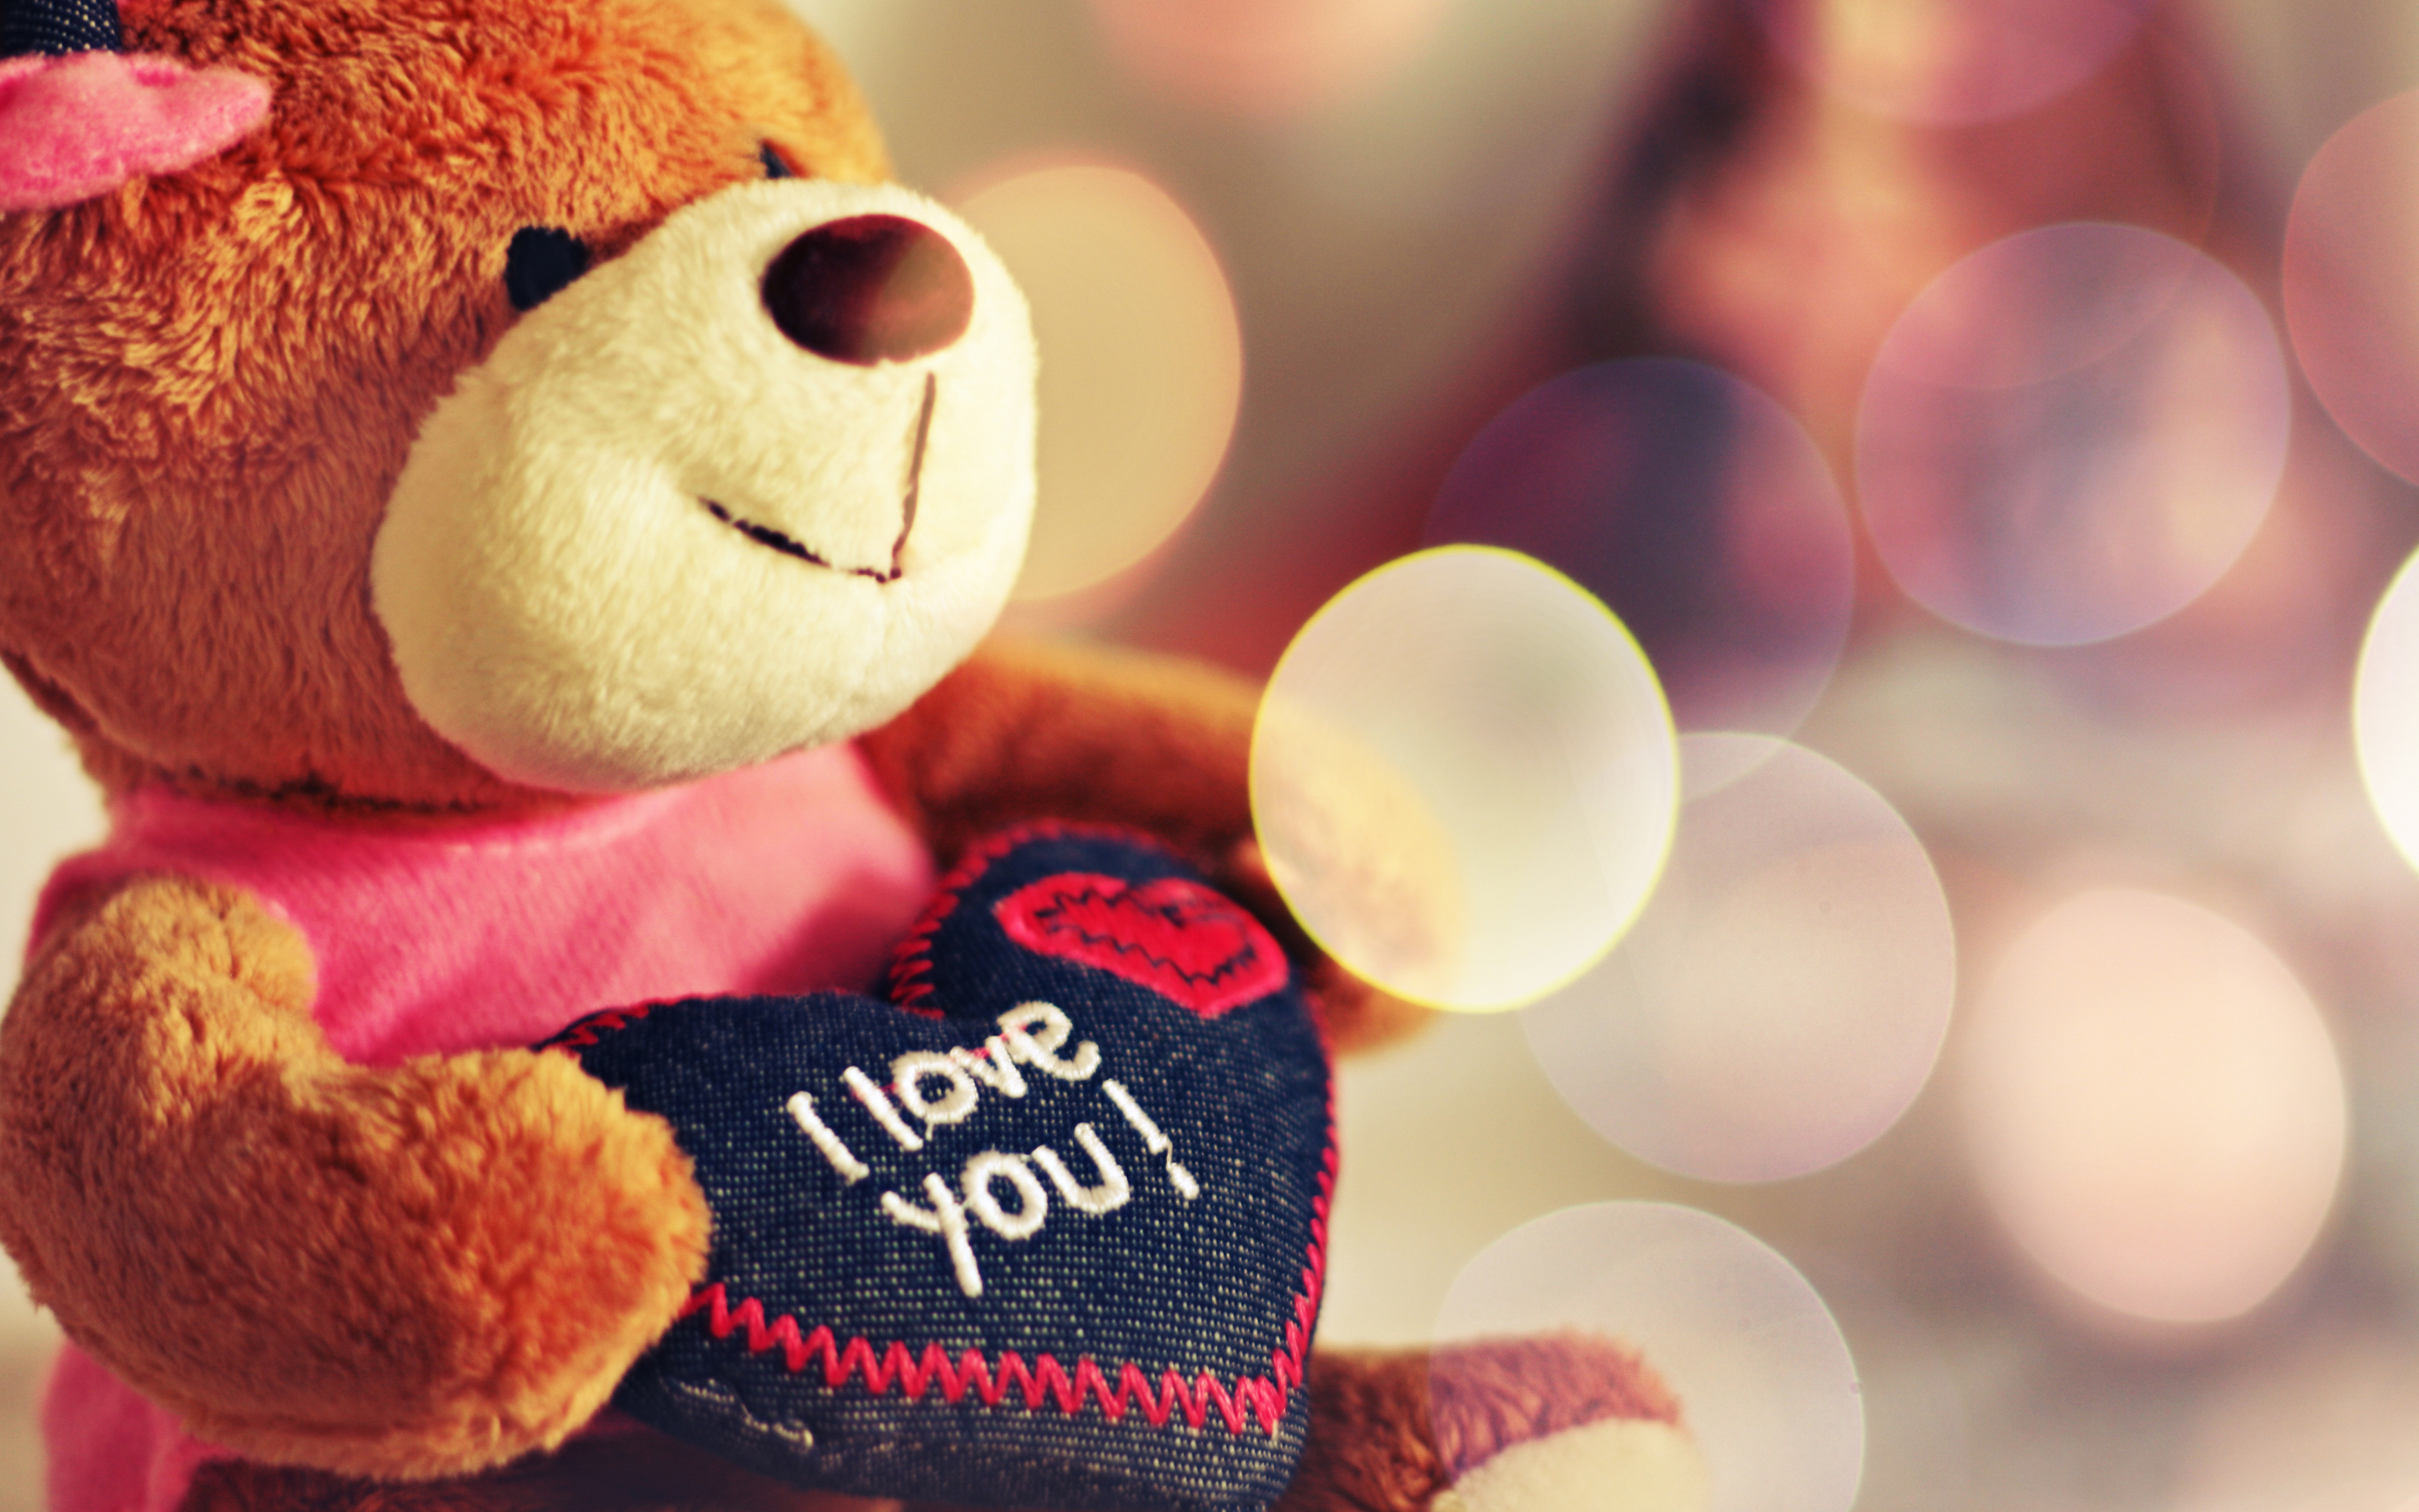 I Love You Teddy Bear Hd Wallpapers Hd Wallpapers